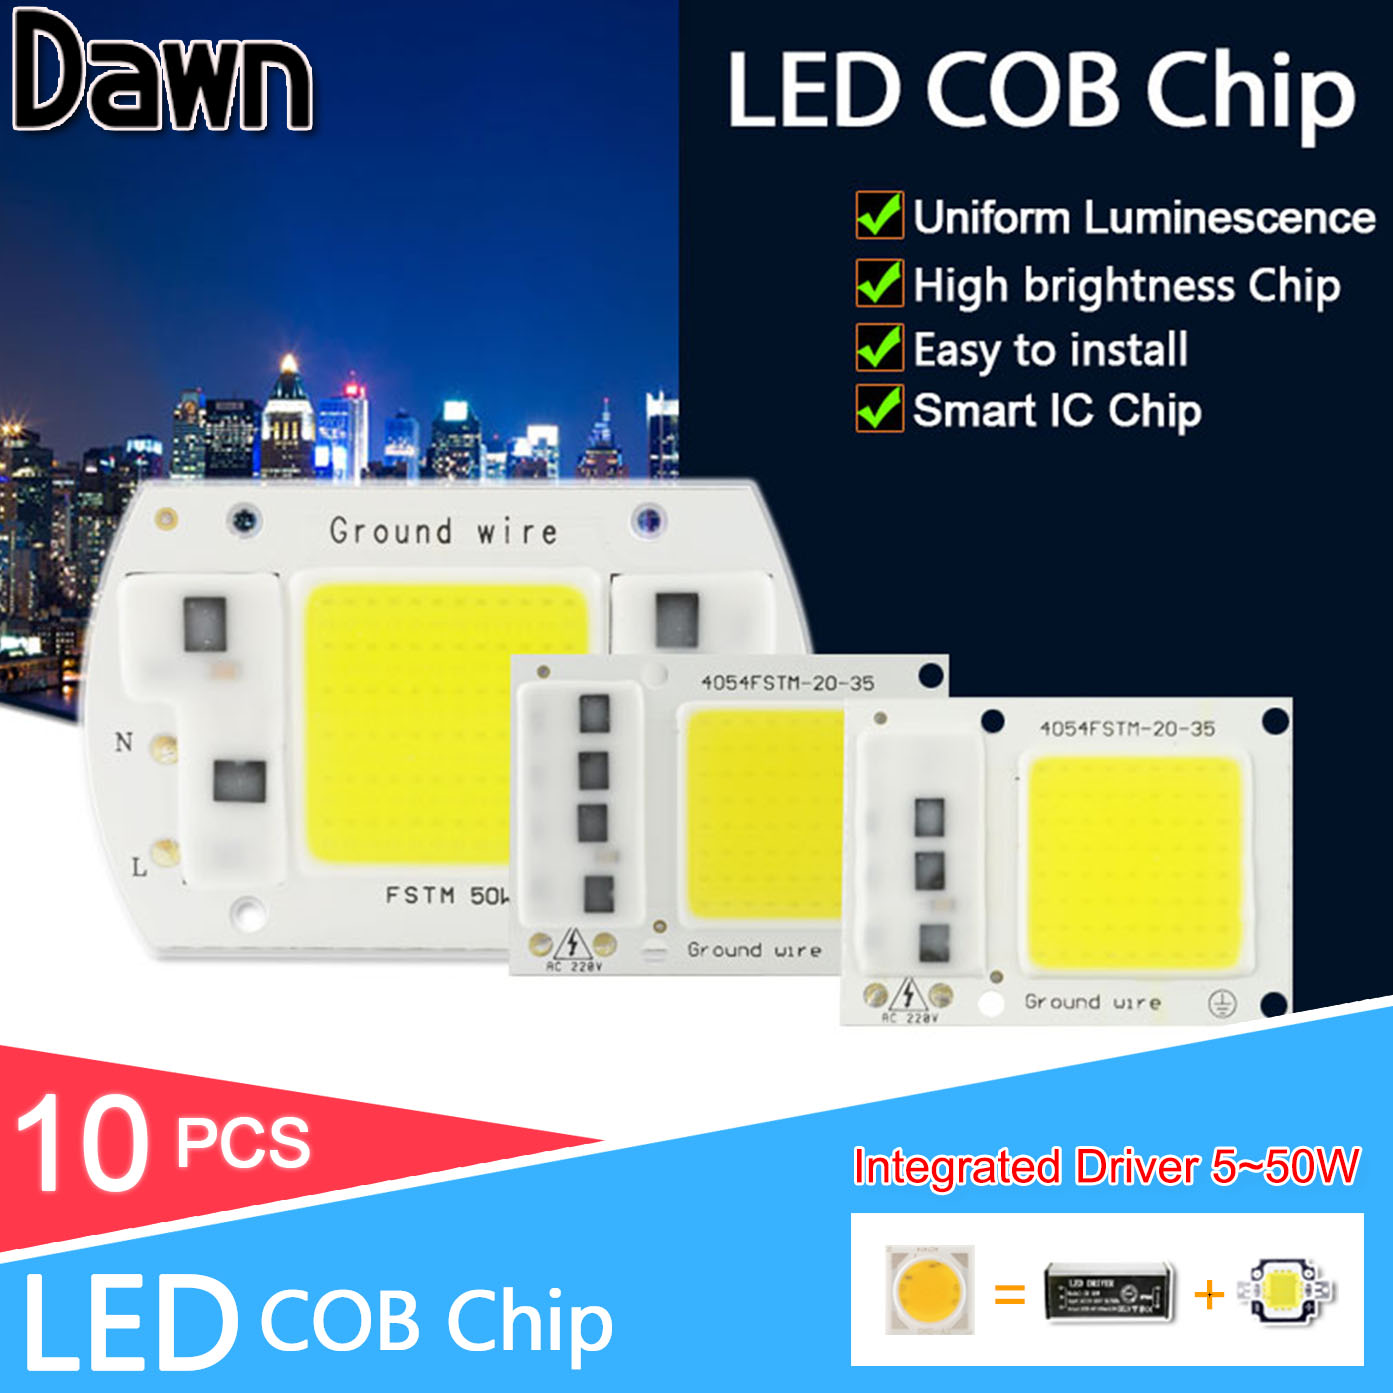 10Pcs High Lumens DIY 220V Integrated COB LED Chip 5W 10W 20W 30W 50W LED Lamp Smart IC For LED Floodlight Flood Light Spotlight ynl cob led lamp bulb 50w 30w 20w 220v input led chip smart ic fit no driver high lumens for diy led flood light spotlight